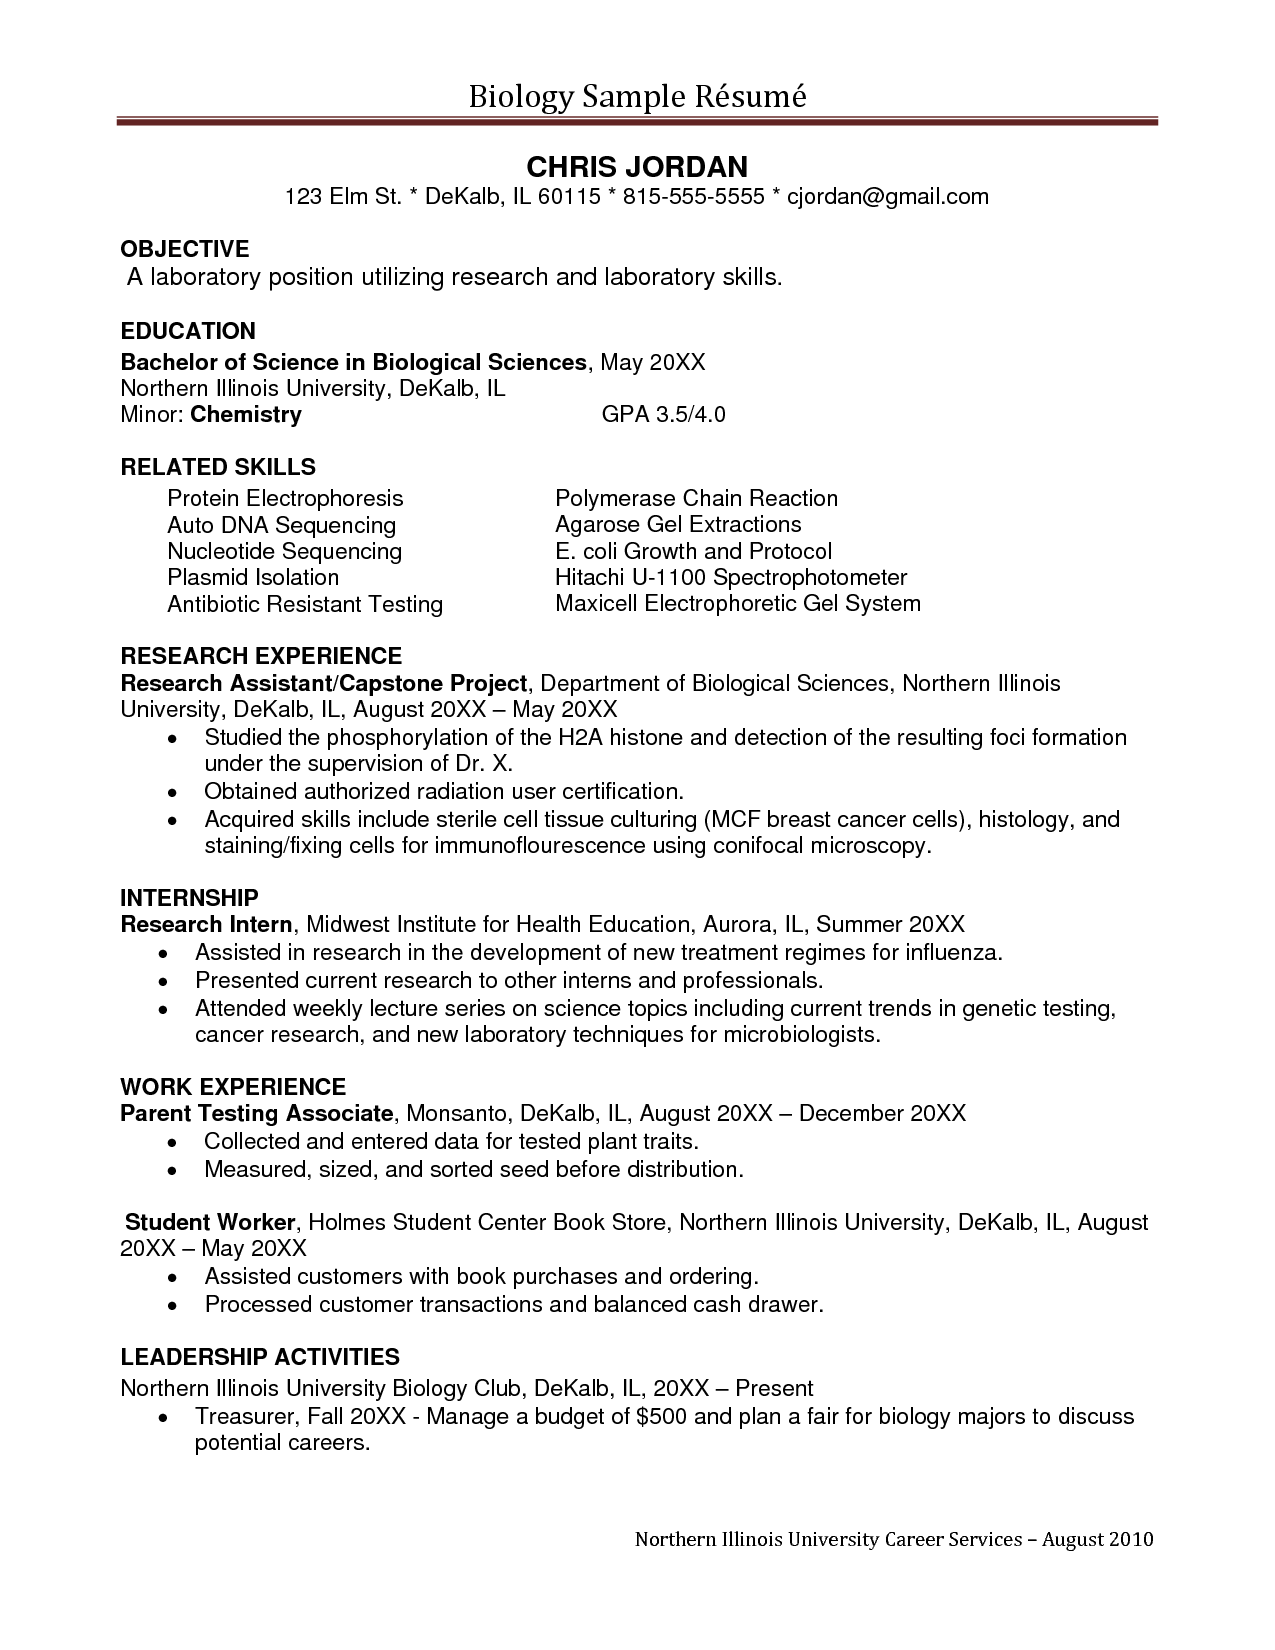 research assistant resume sample objective research assistant resume sample objective admin assistant objective resume sample - Writing Objective For Resume